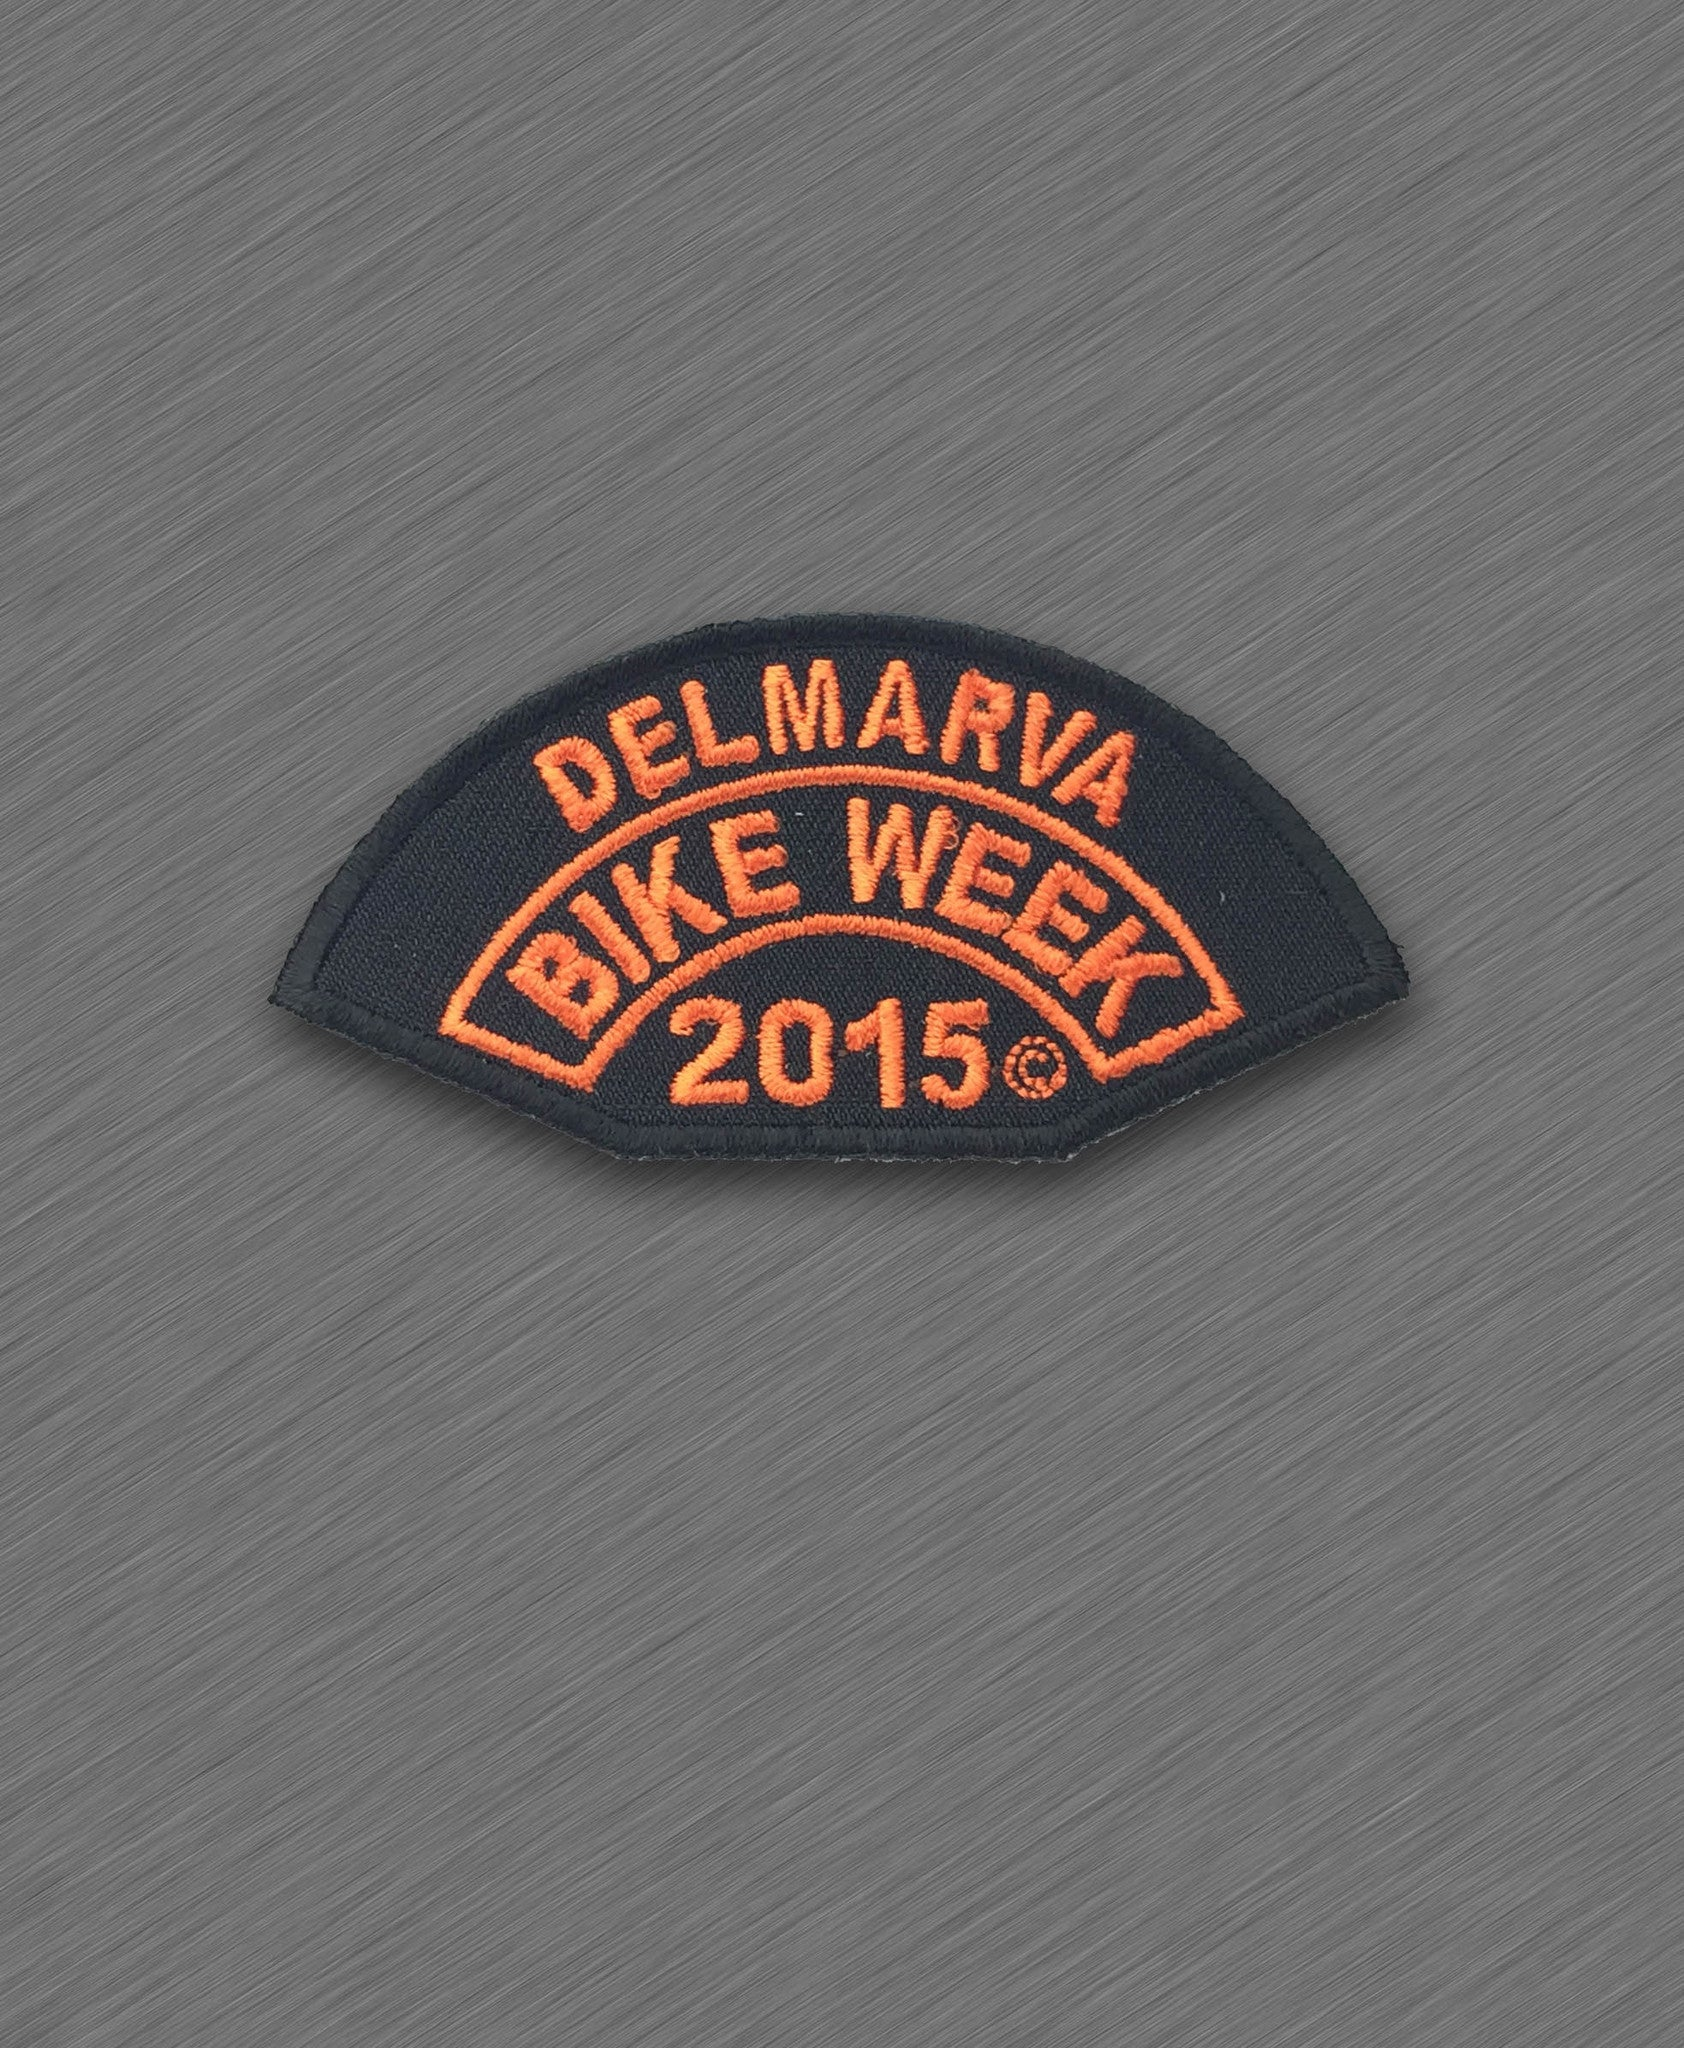 2015 Delmarva Orange and Black Patch